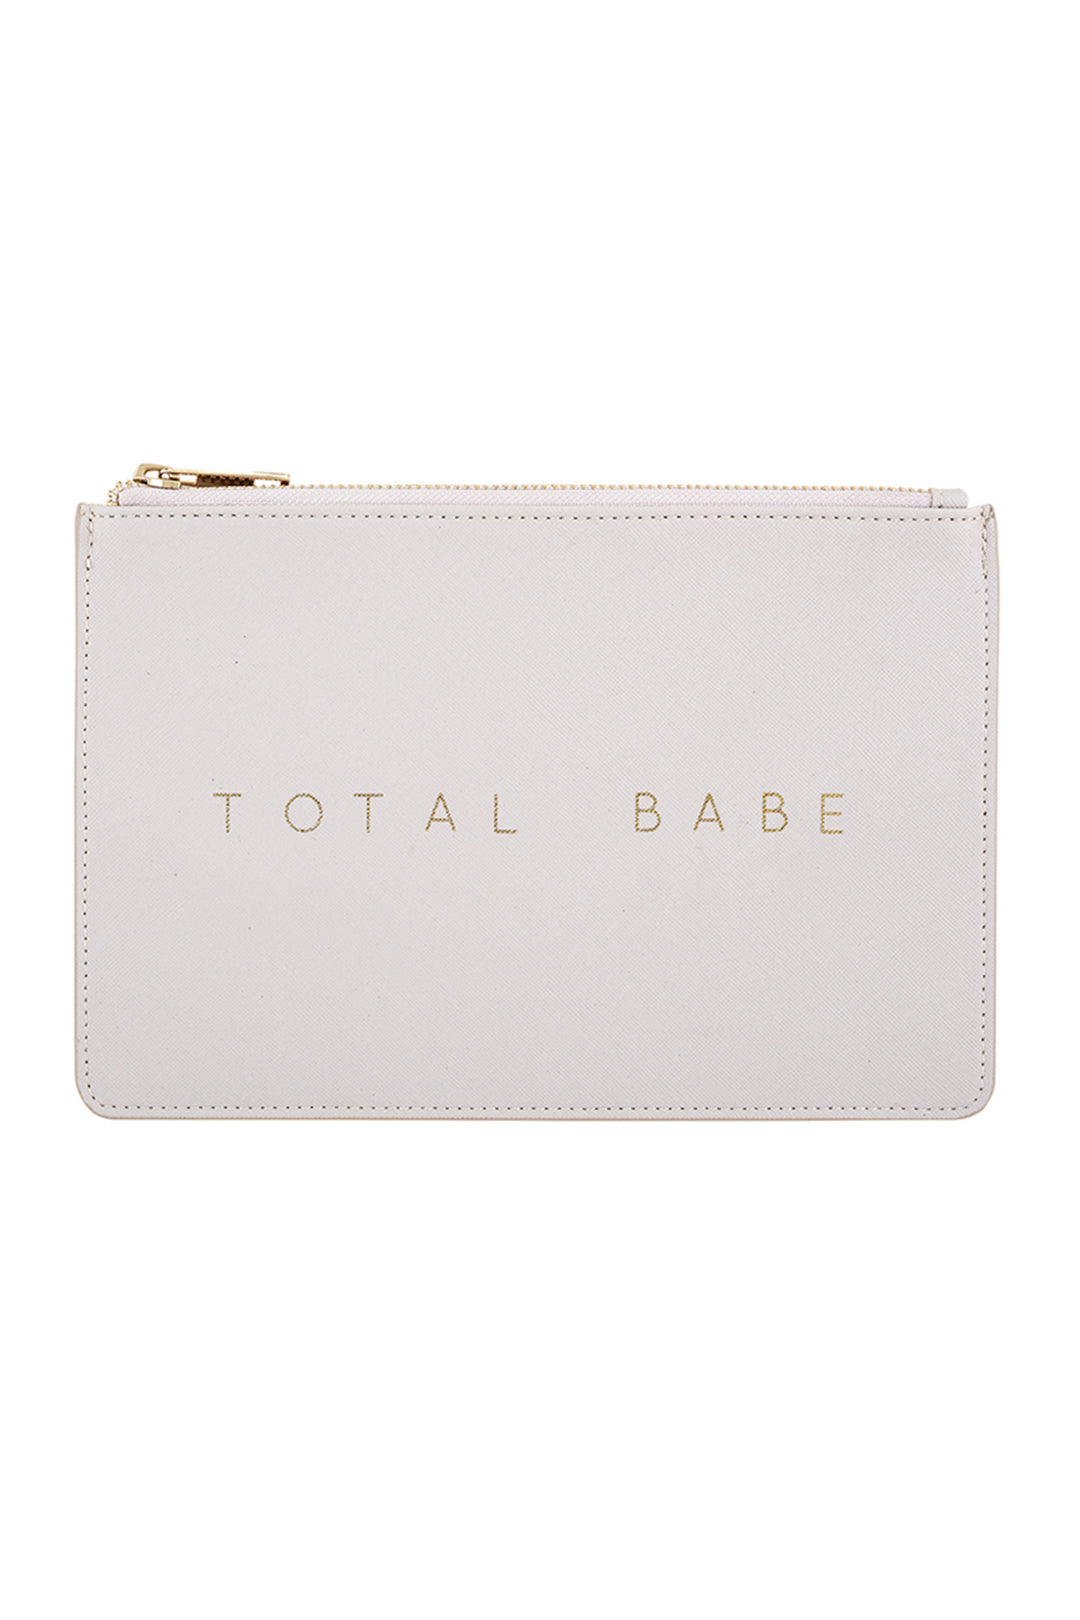 Total Babe Pouch